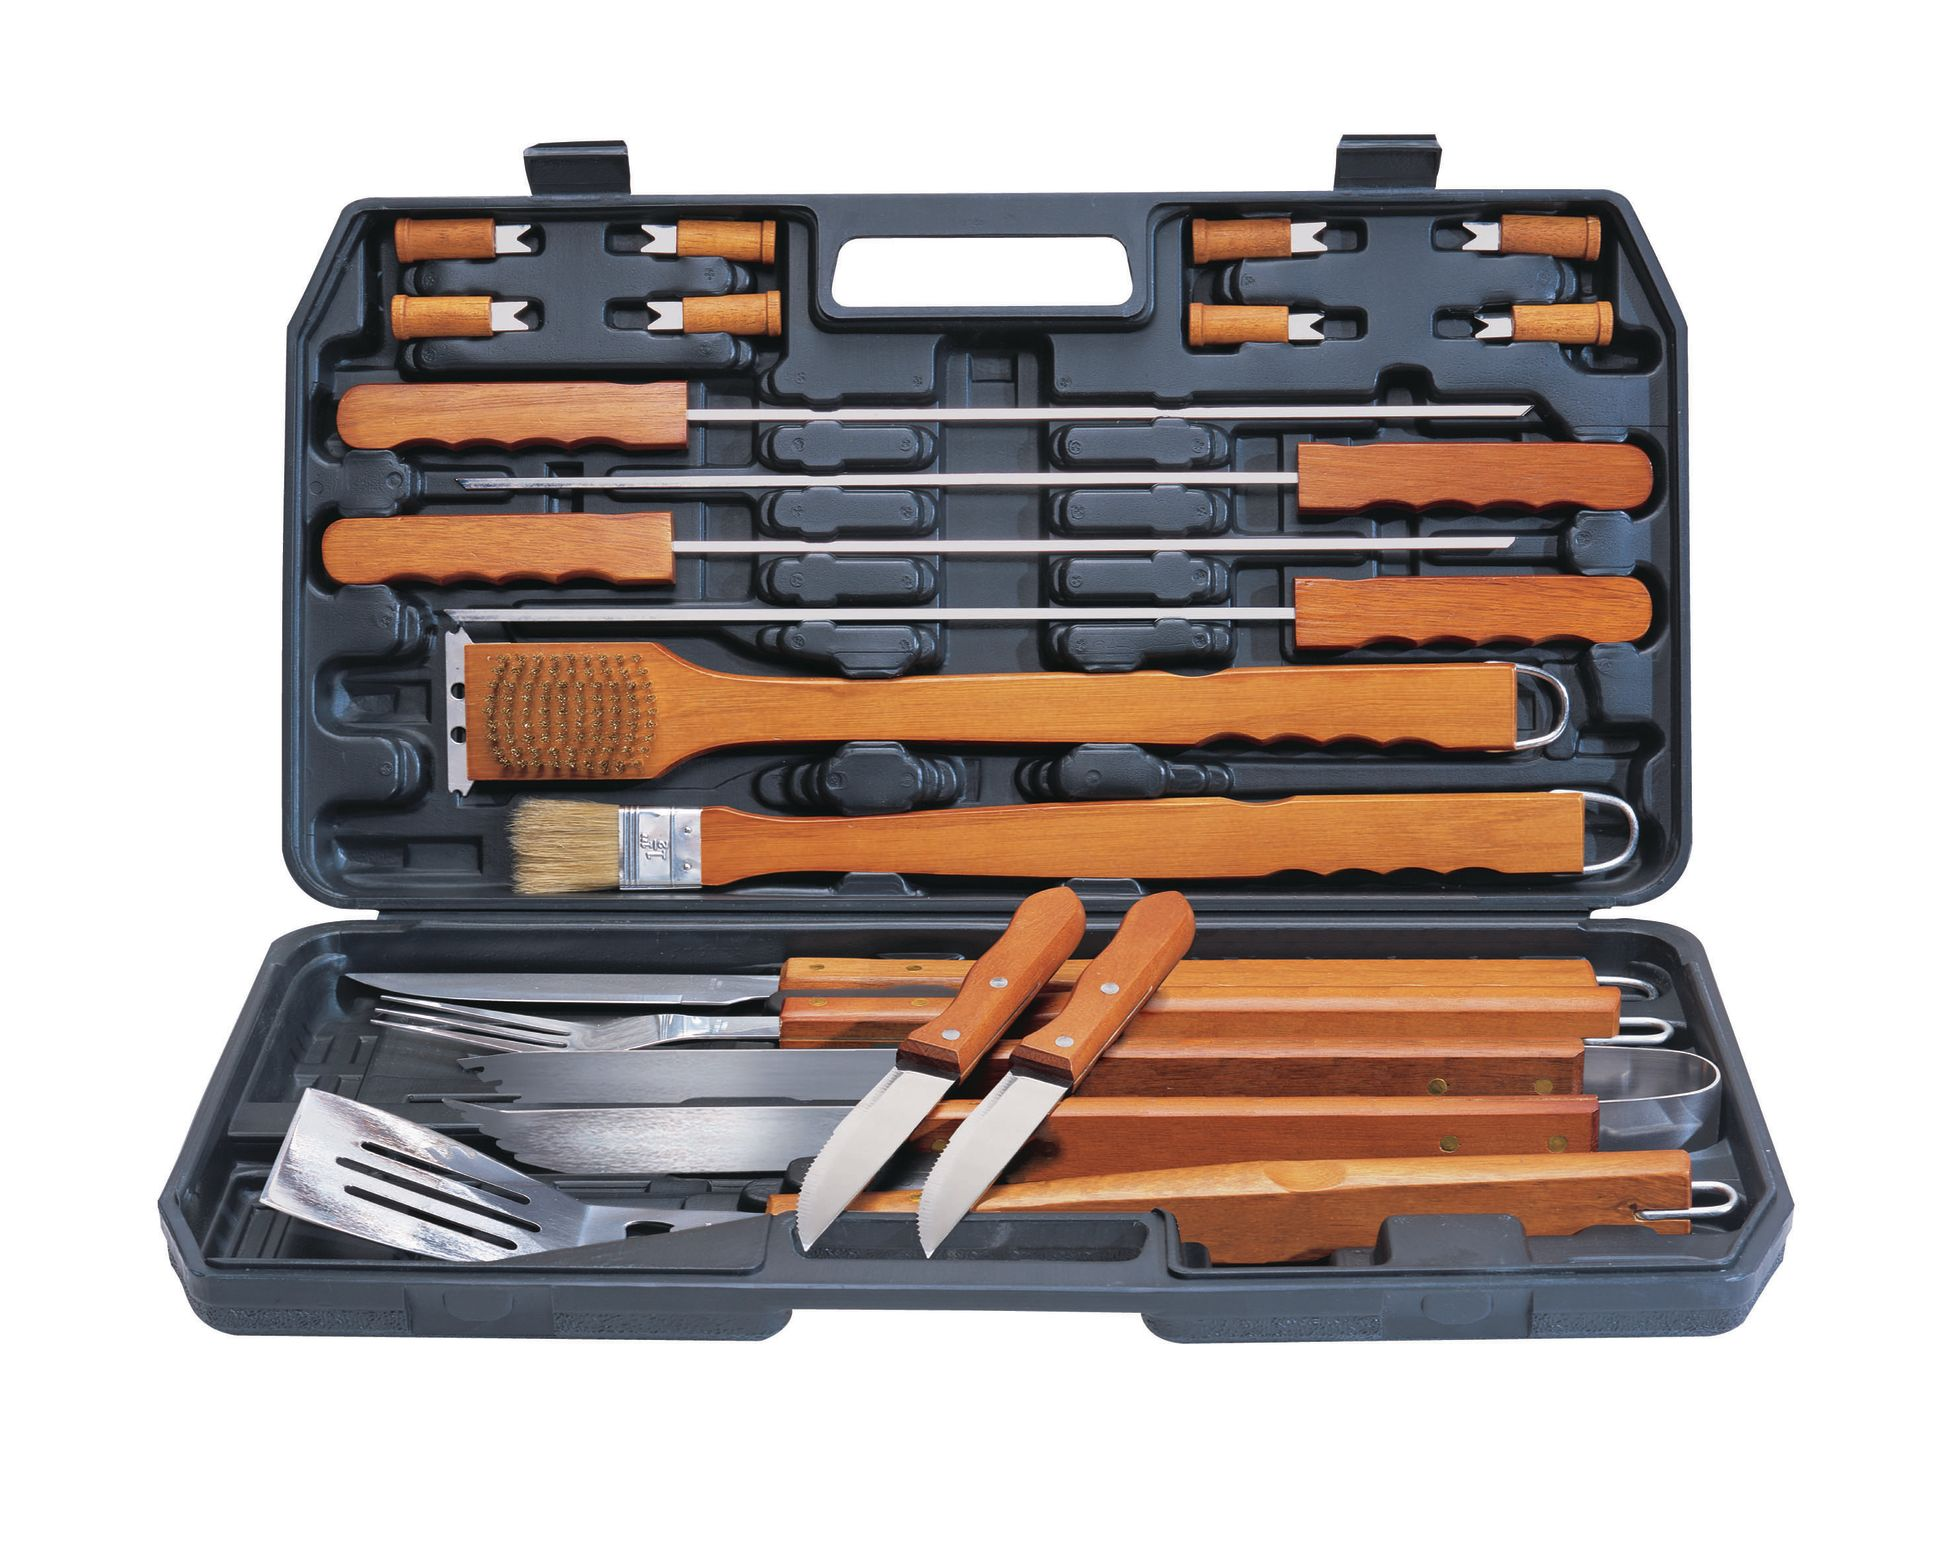 21Pc Deluxe Wood Tool Set